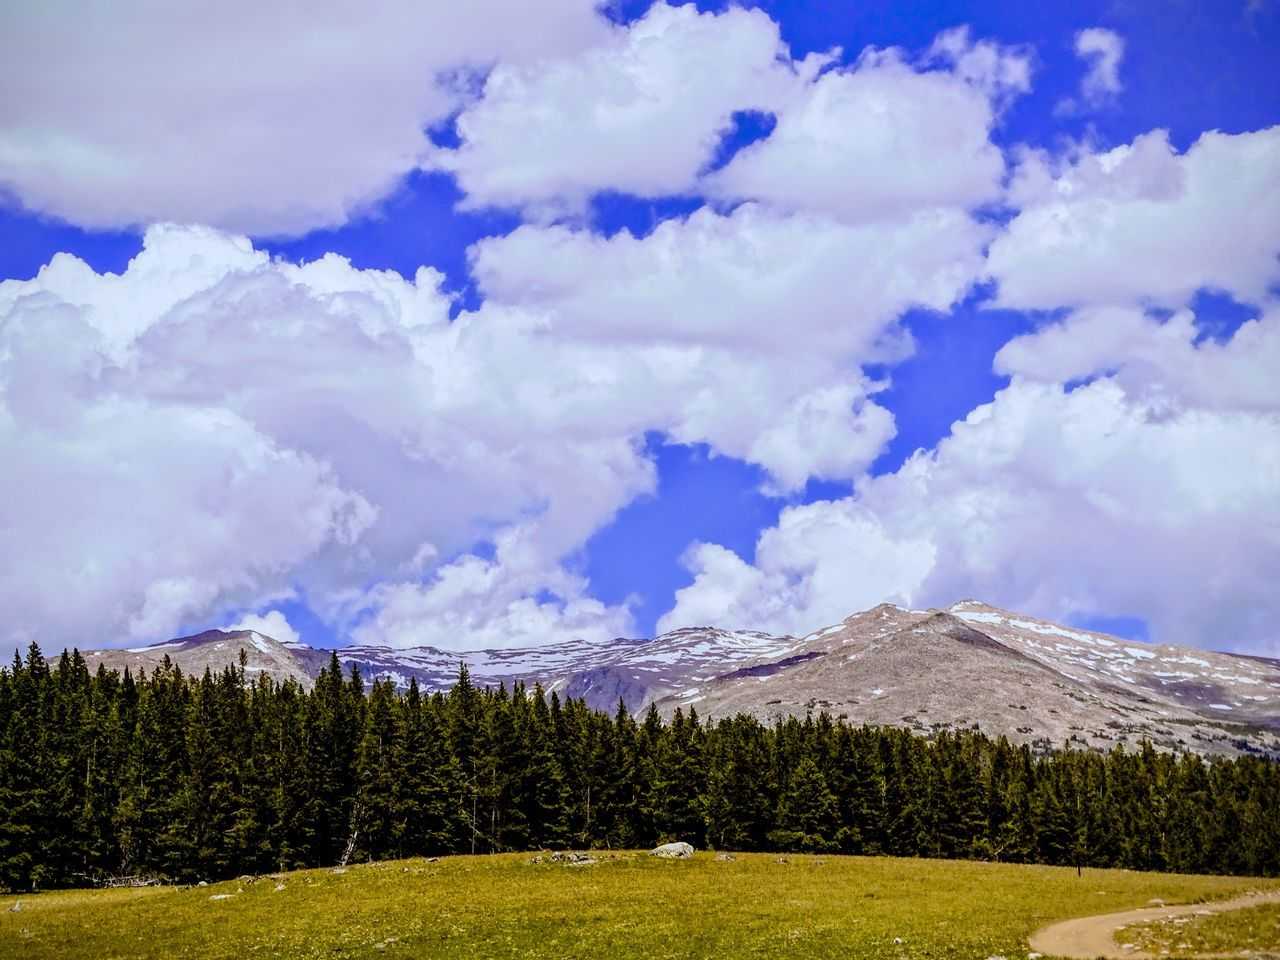 cloud - sky, sky, beauty in nature, scenics, tranquility, nature, tranquil scene, mountain, day, no people, landscape, outdoors, growth, tree